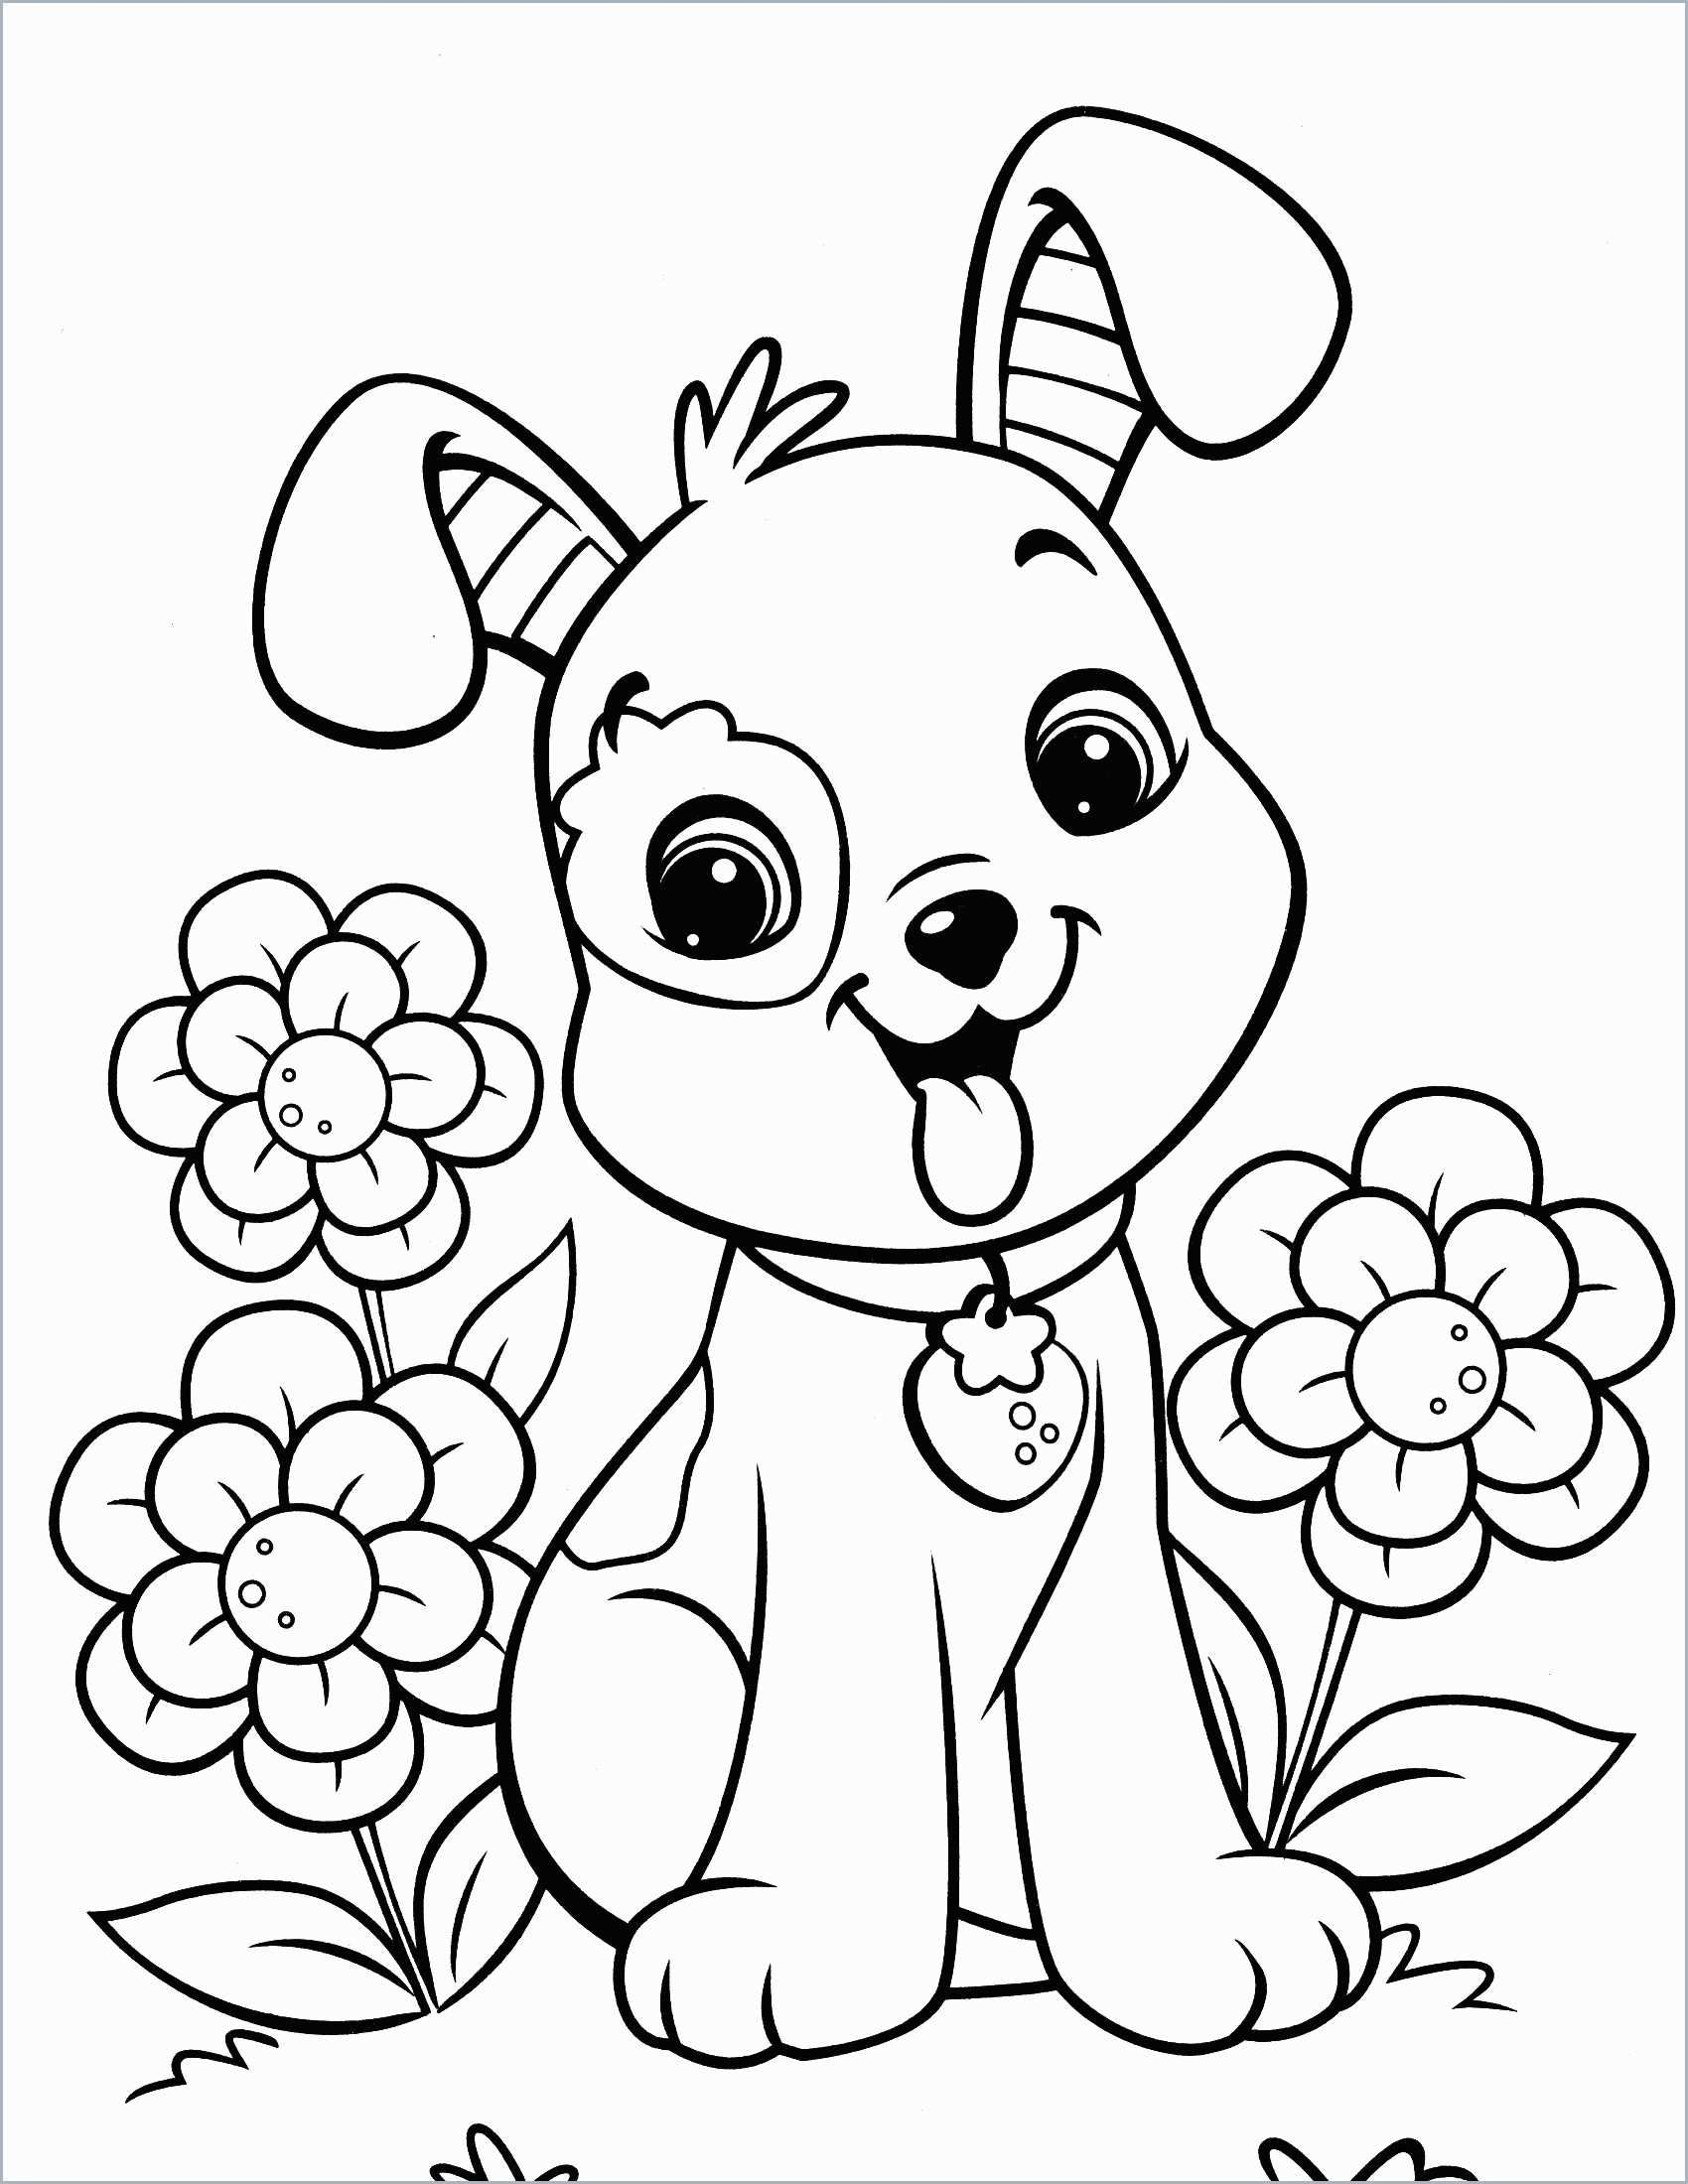 A Puppy Coloring Pages